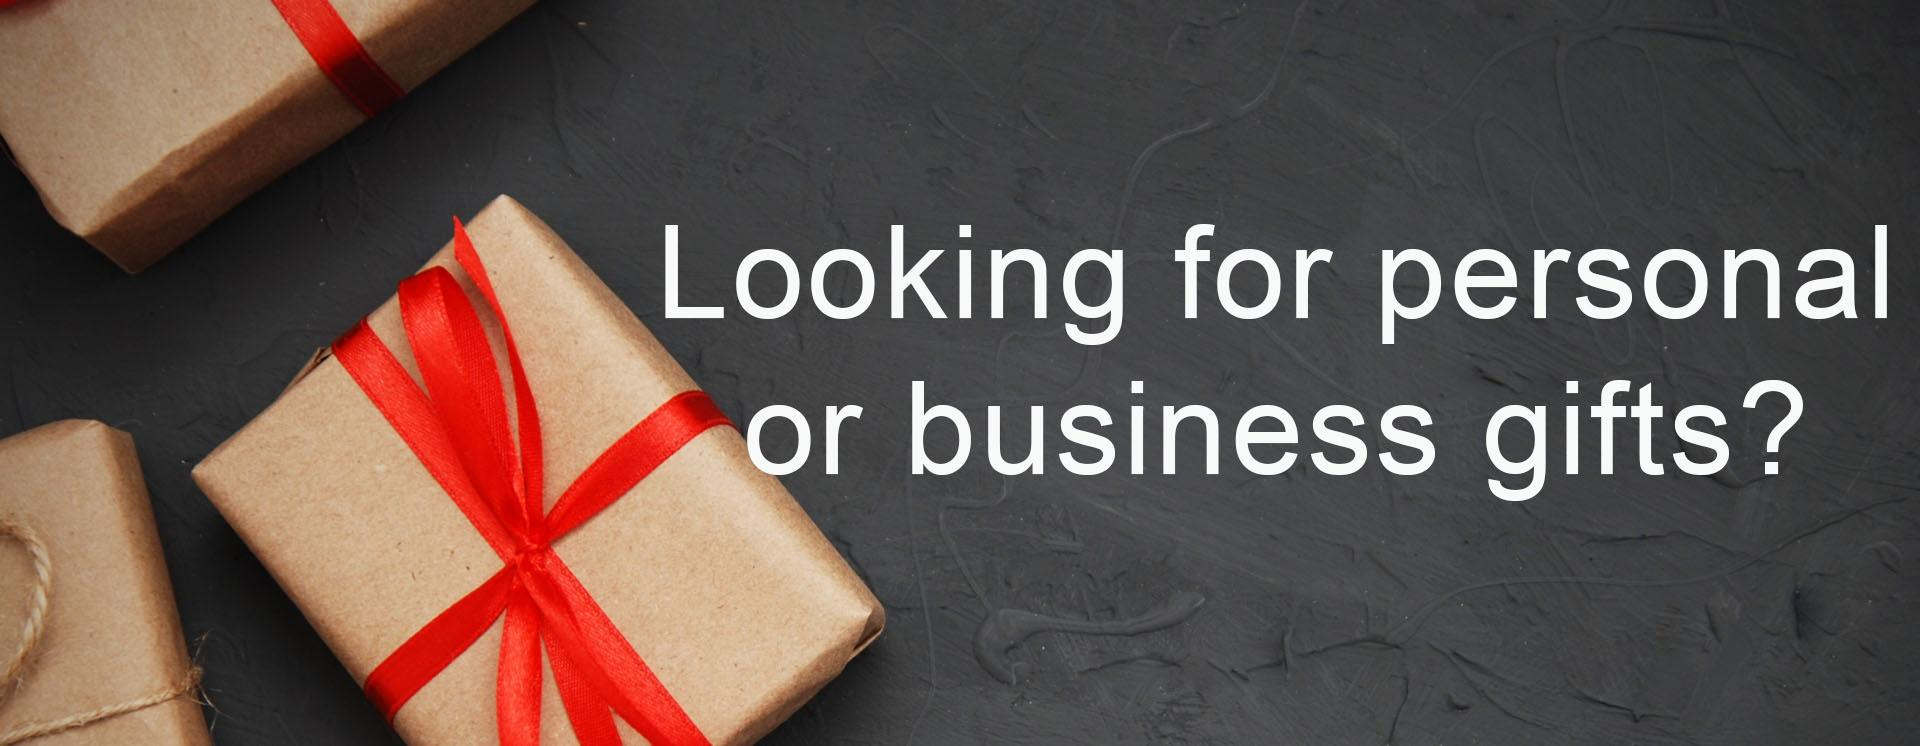 Looking for personal of business gifts?